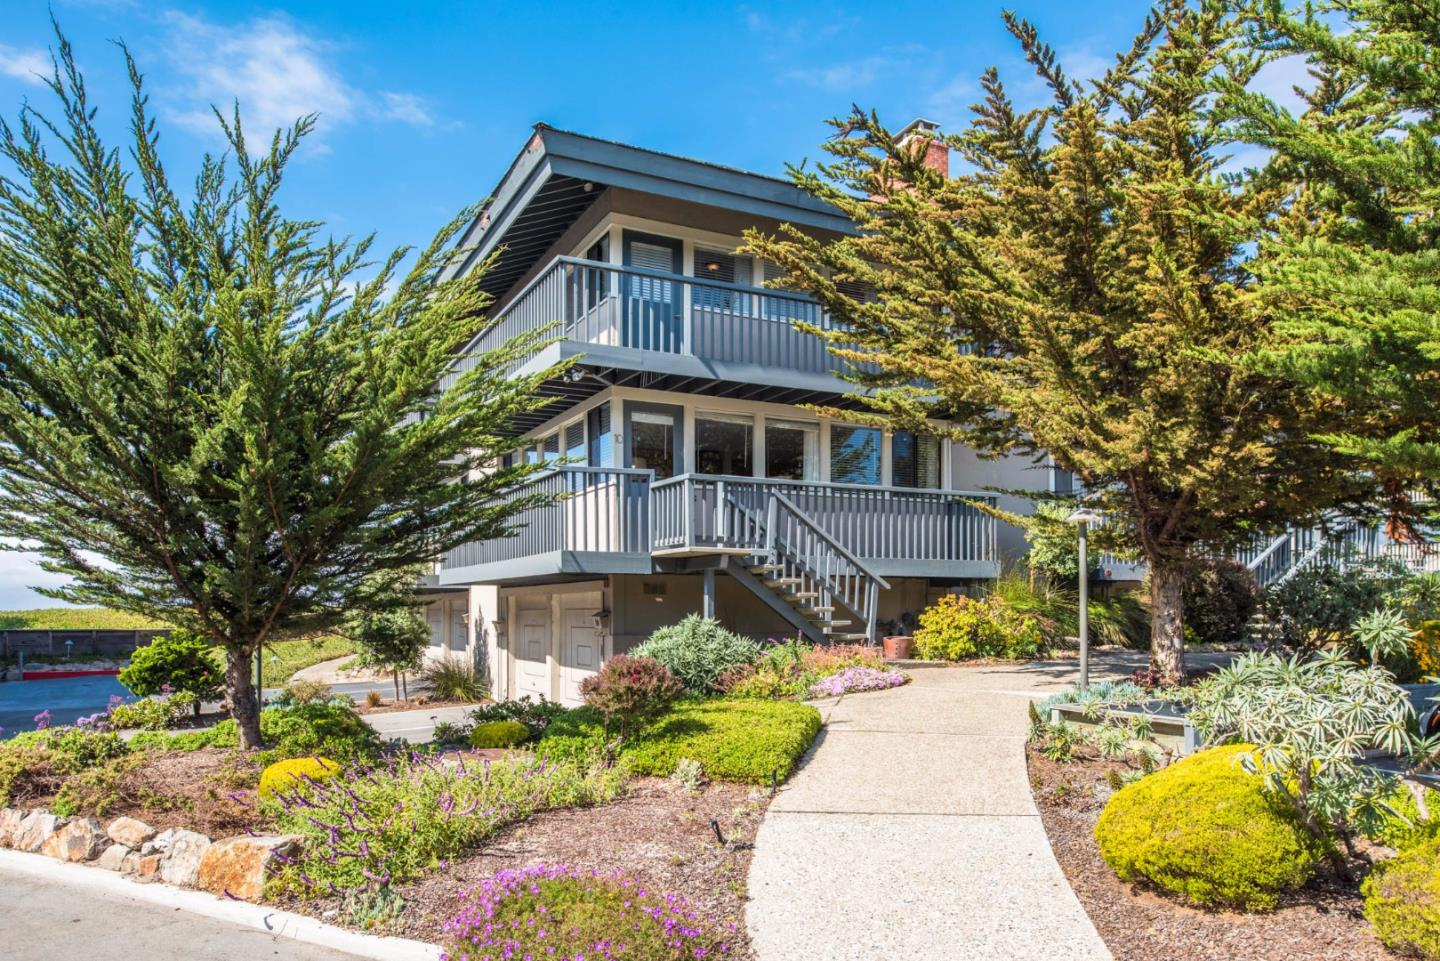 Additional photo for property listing at 10 La Playa Street  Monterey, California 93940 Estados Unidos